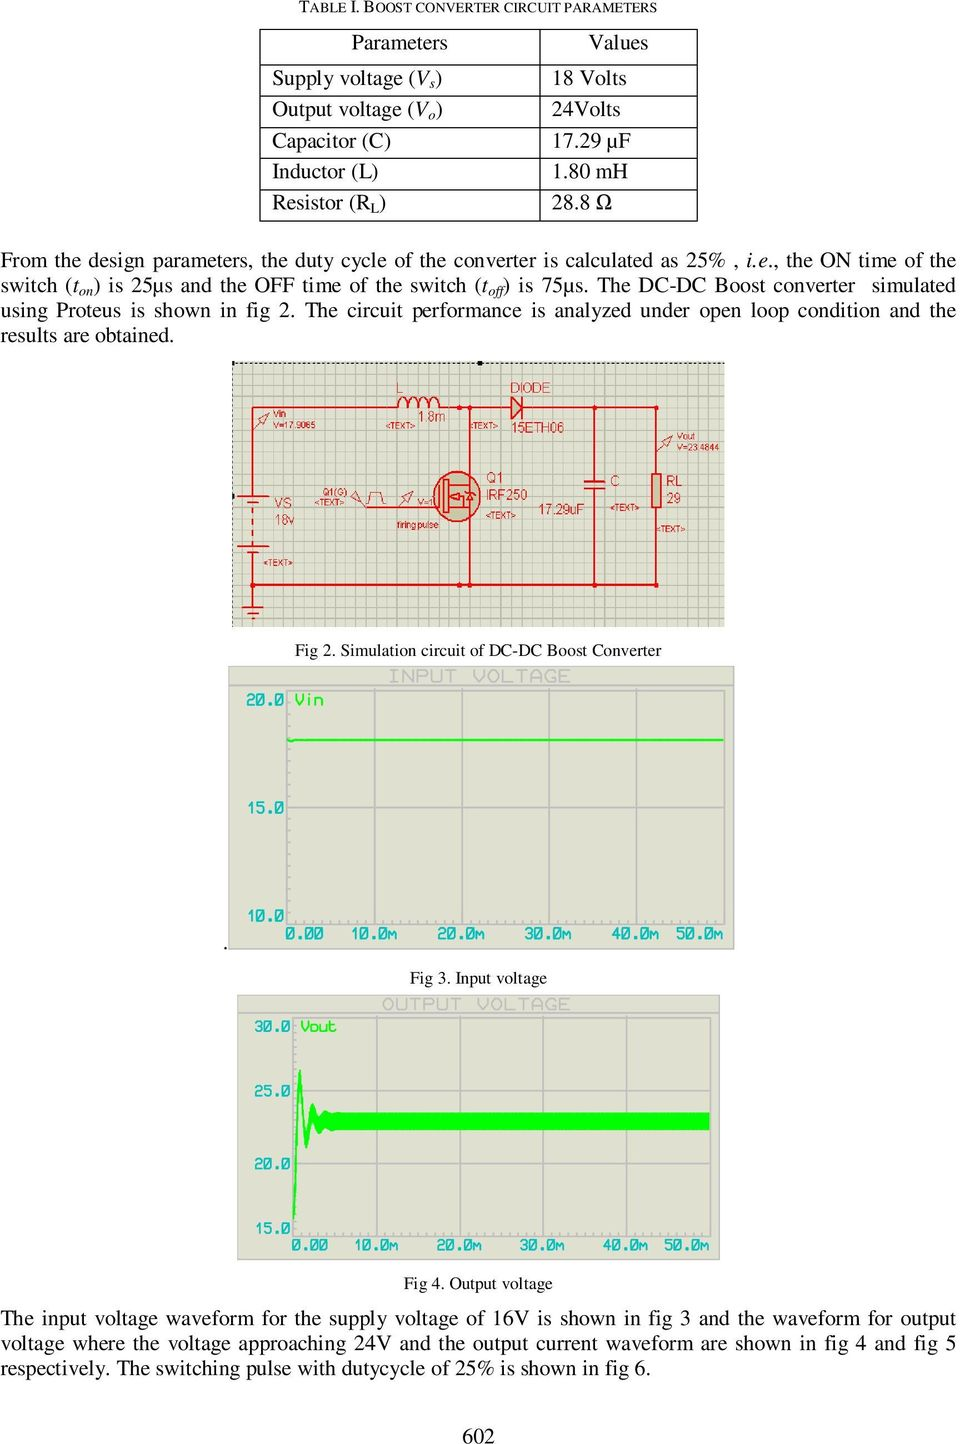 Design Simulation And Analysis Of Microcontroller Based Dc Boost Proteus Circuit The Converter Simulated Using Is Shown In Fig 2